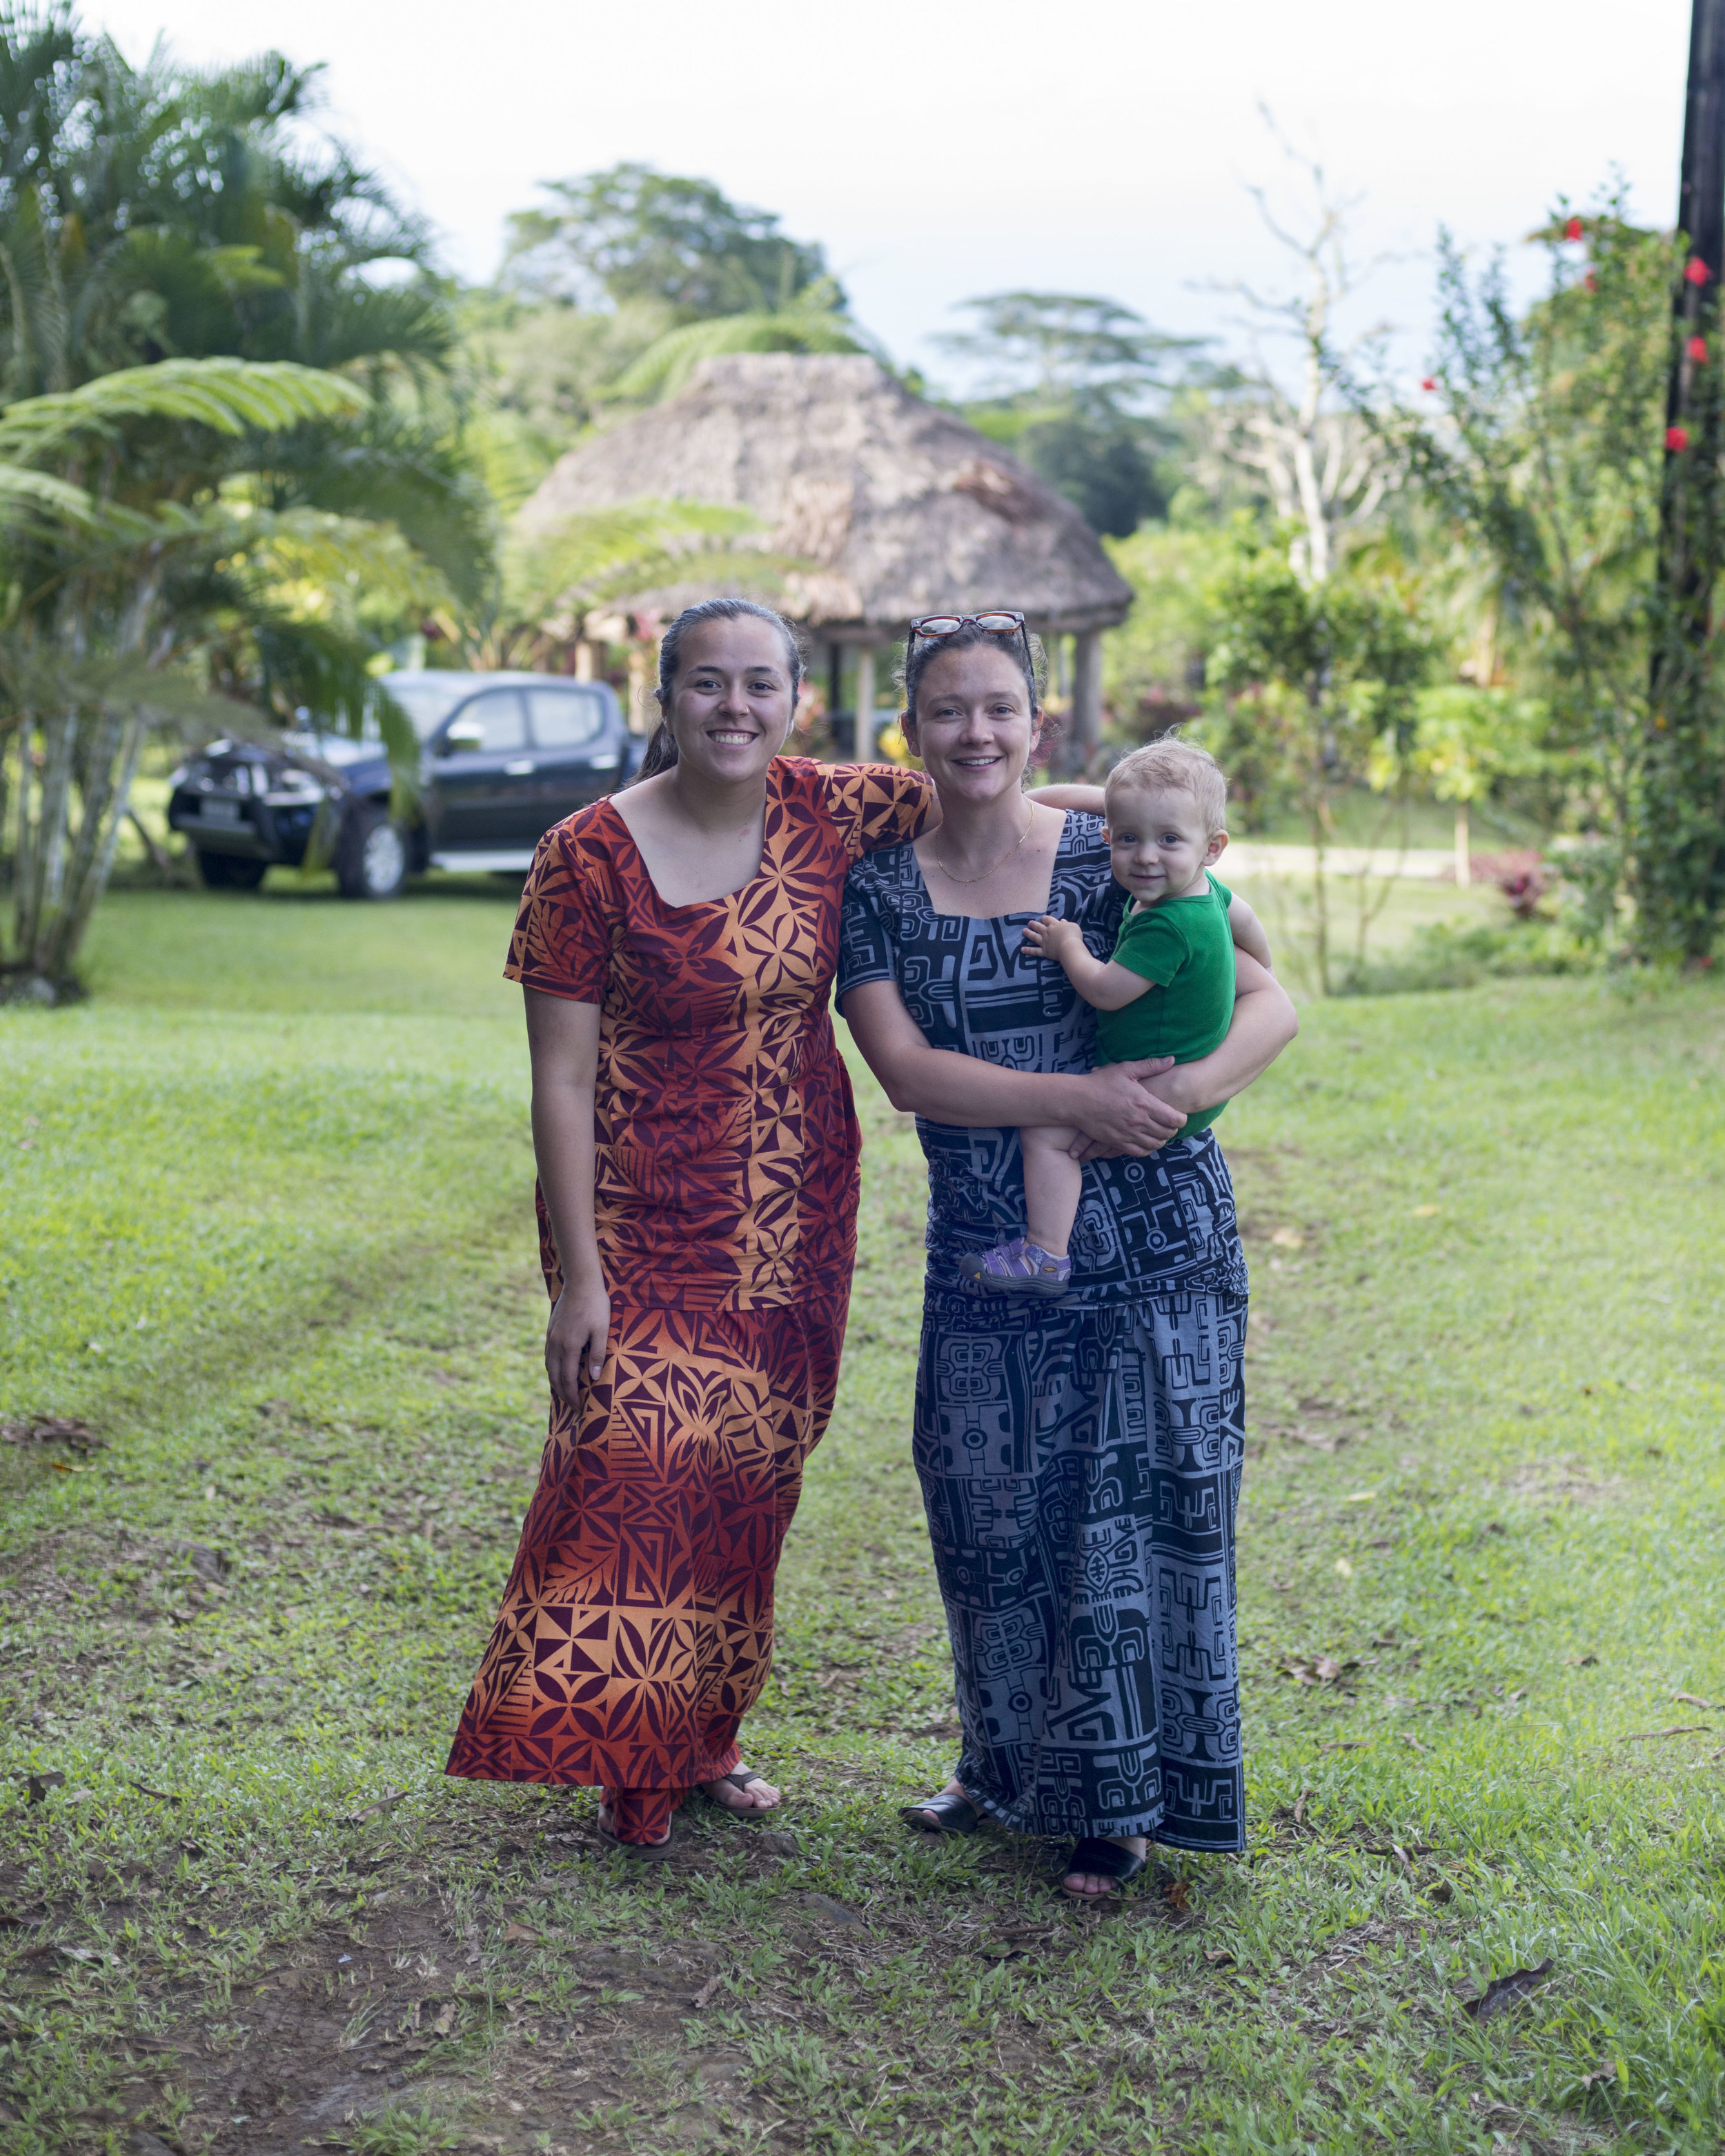 - Tia Tupuola traveled to Samoa with me in summer 2017 to assist with research about women's relationships to their bodies. During this time she also conducted independent research on the historical integration of Christianity into village life.